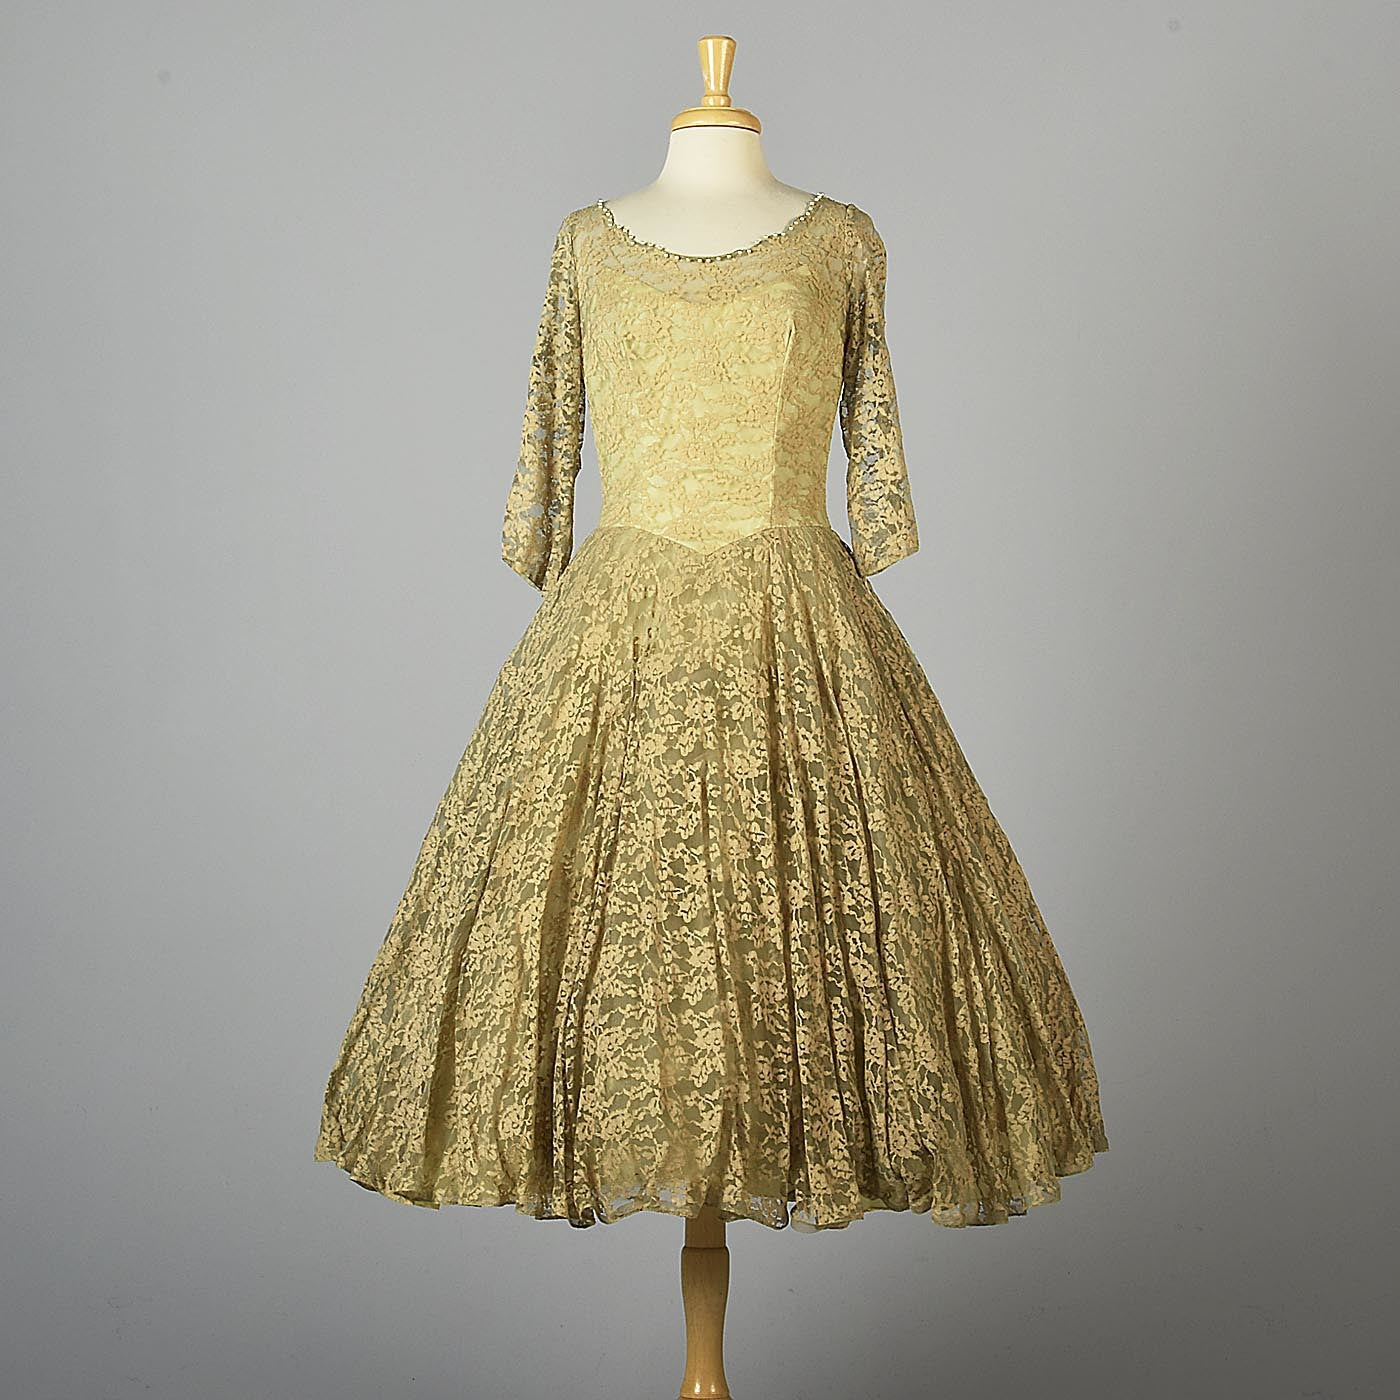 1950s Emma Domb Lace Party Dress